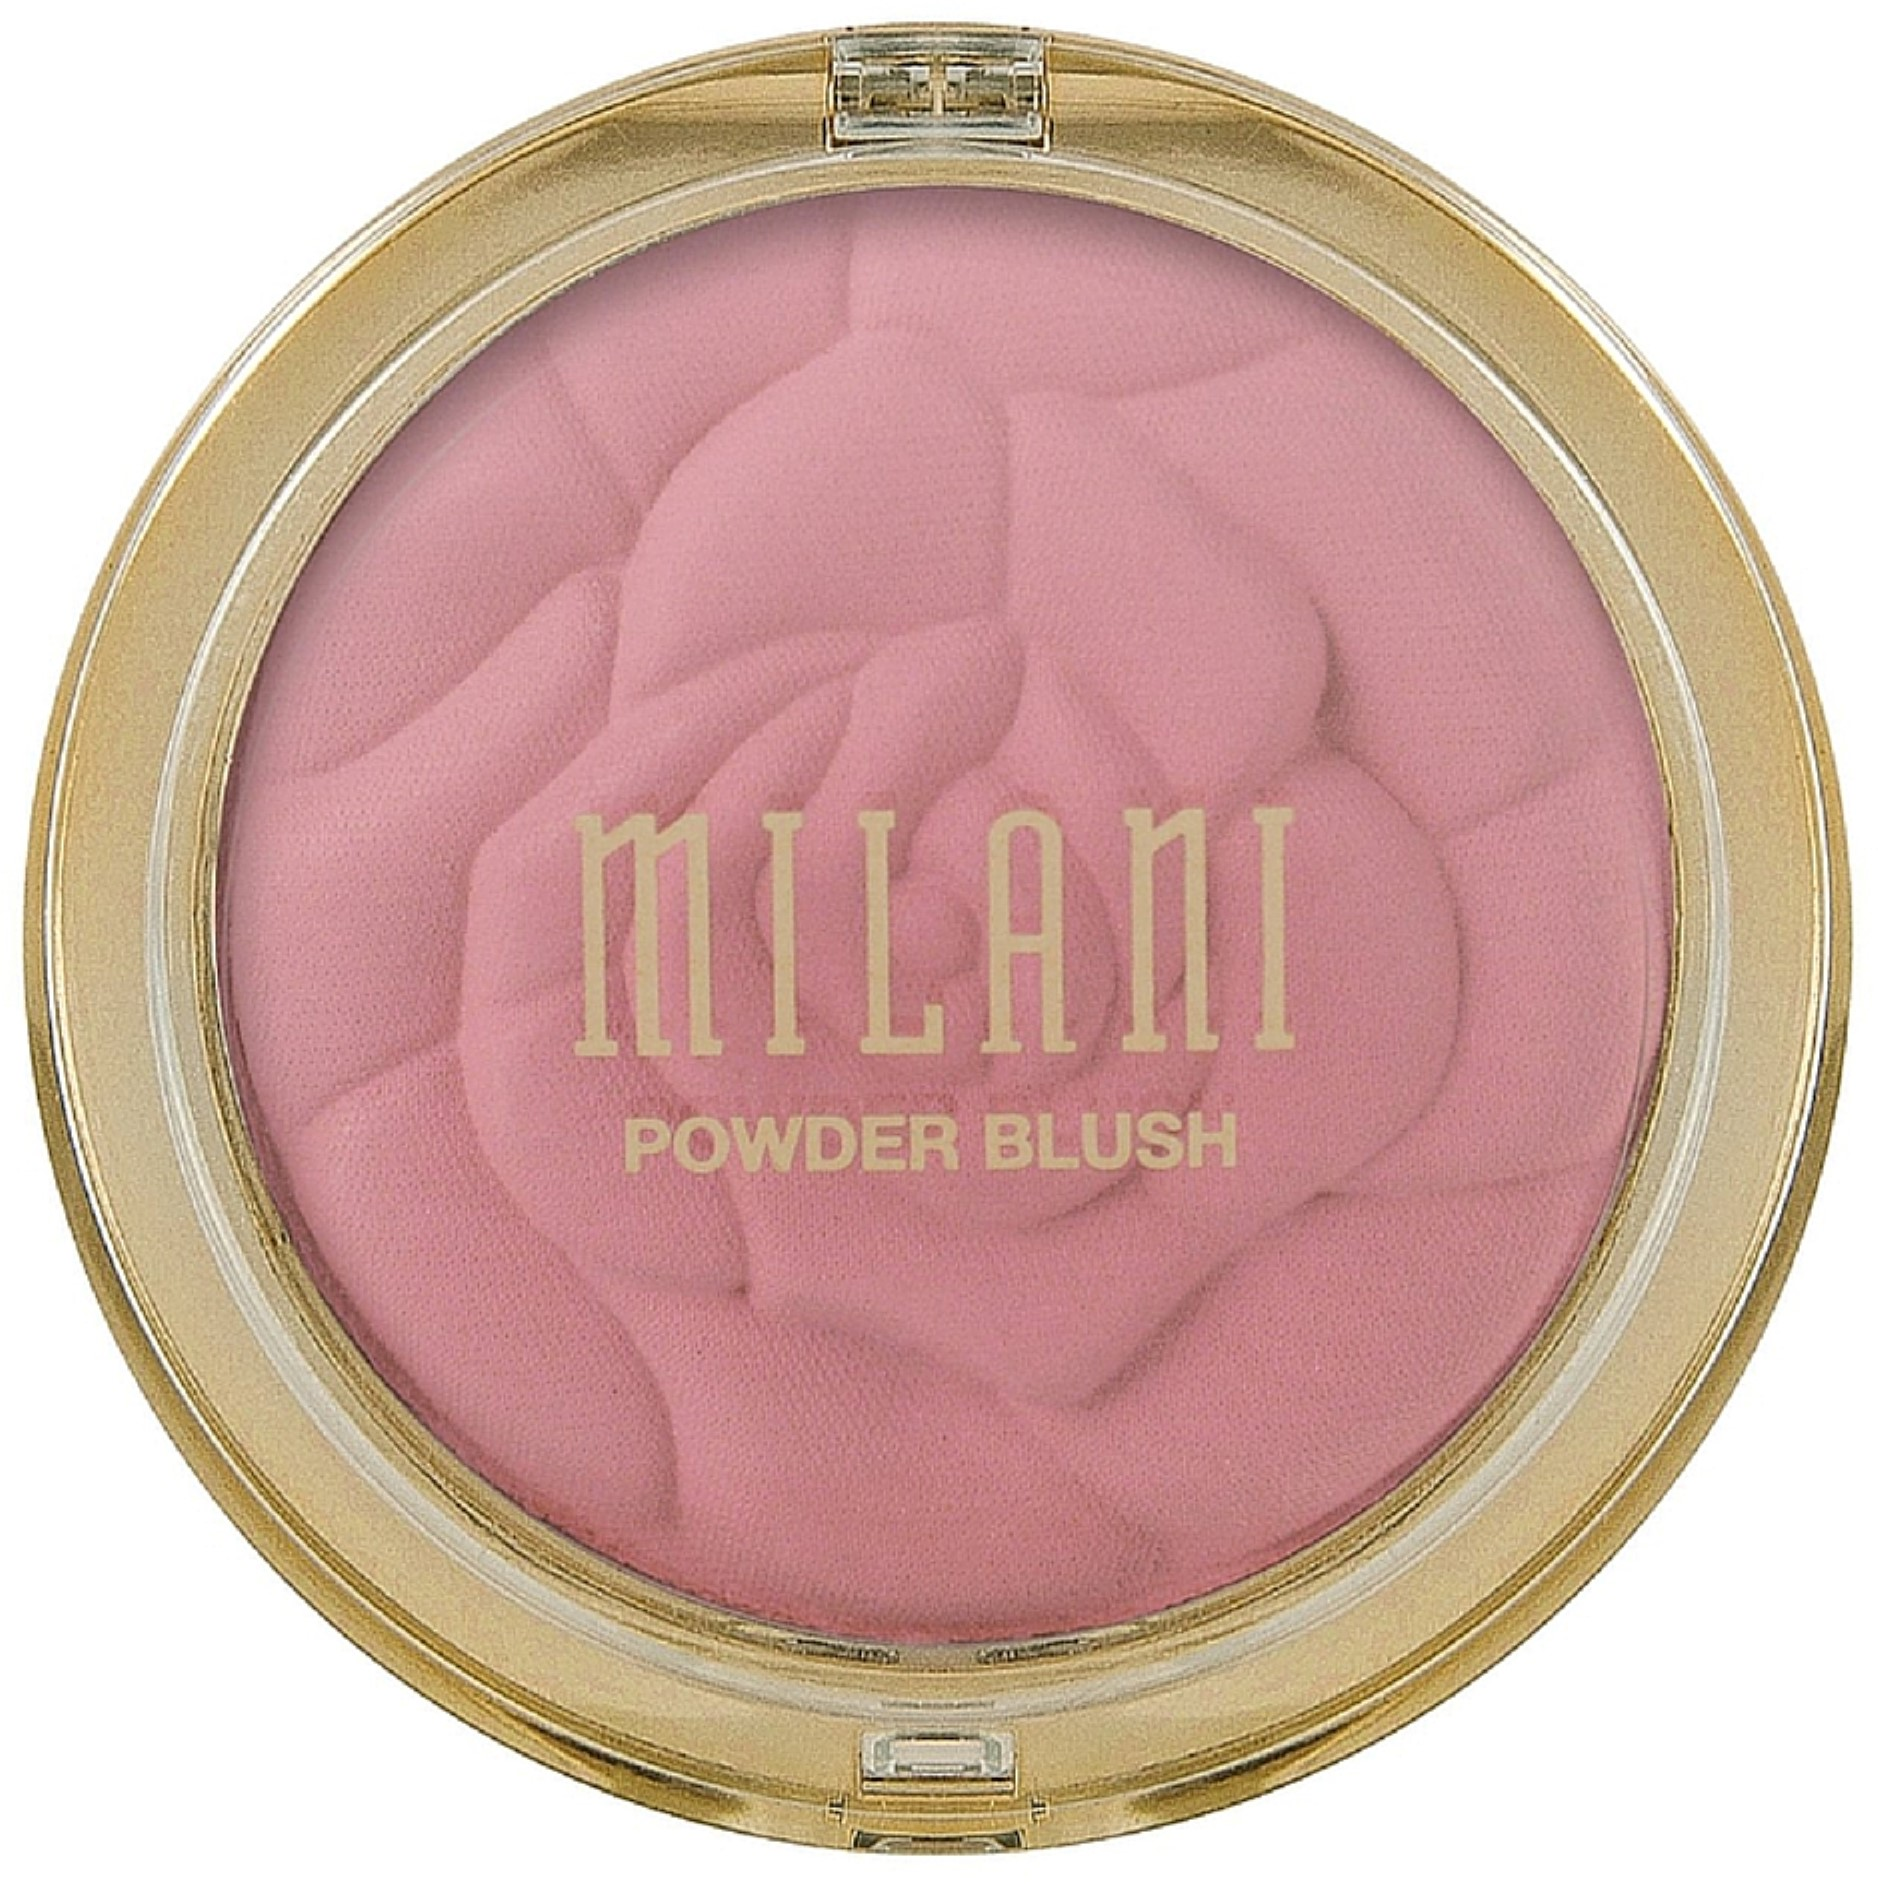 Milani Powder Blush, Romantic Rose [01] 0.60 oz (Pack of 2)